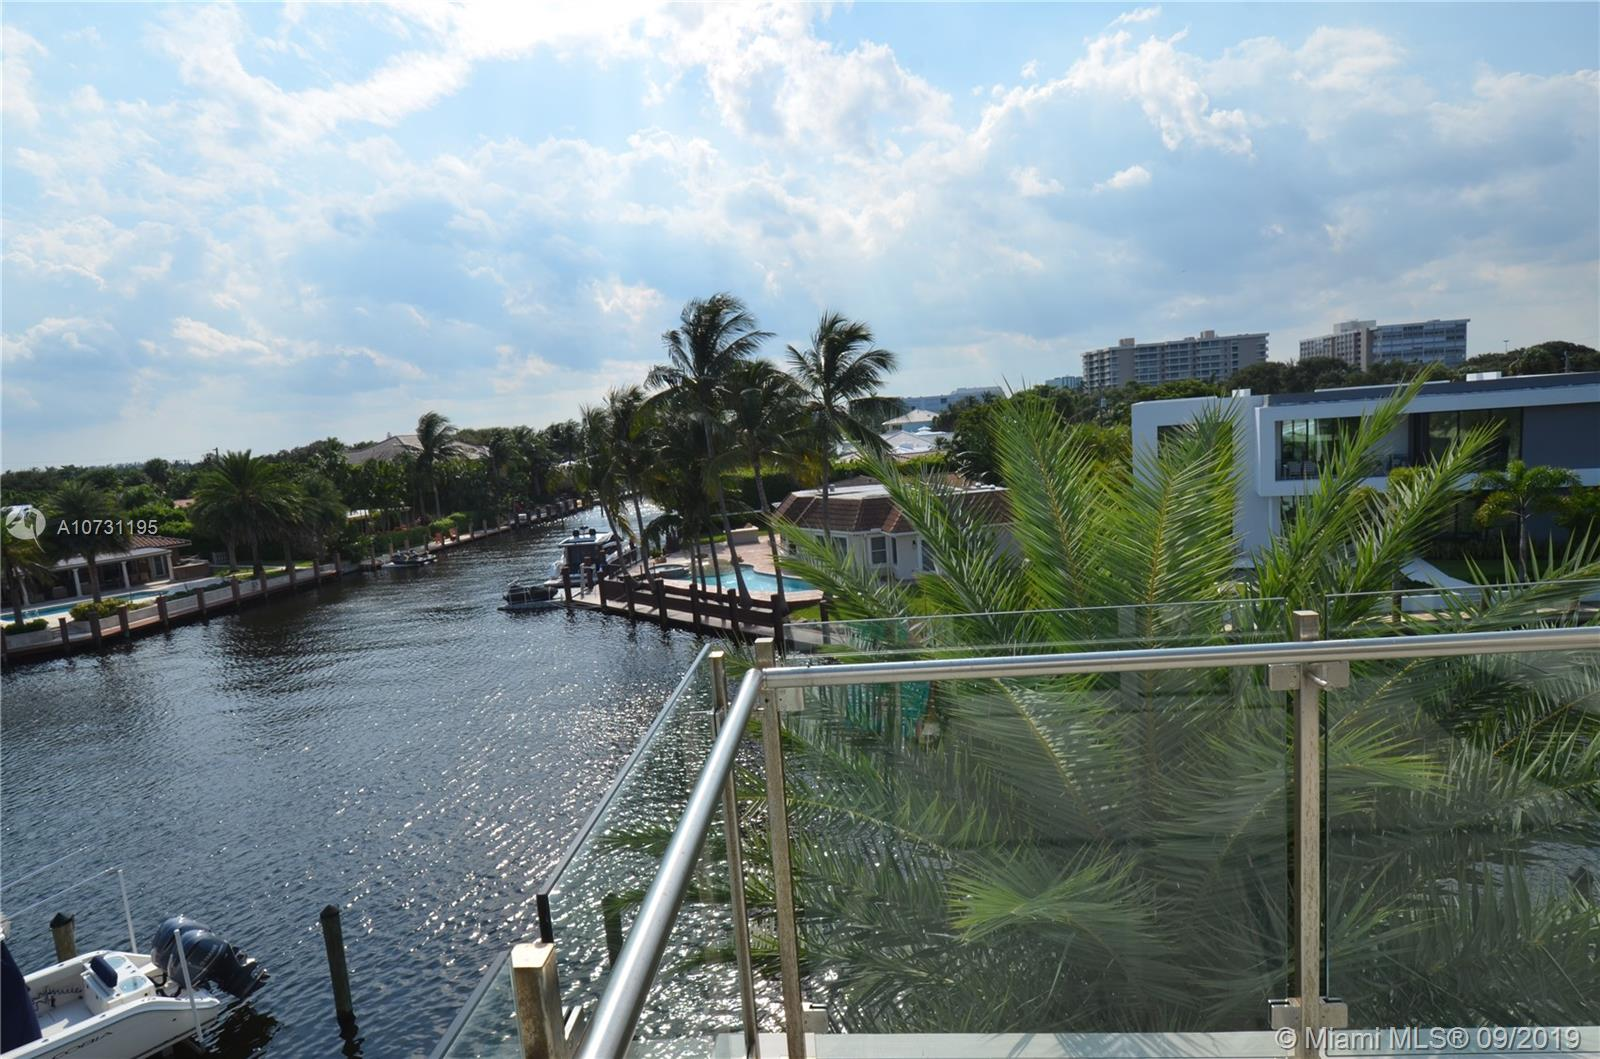 255 Shore Ct ##255, Lauderdale By The Sea, FL 33308 - Lauderdale By The Sea, FL real estate listing